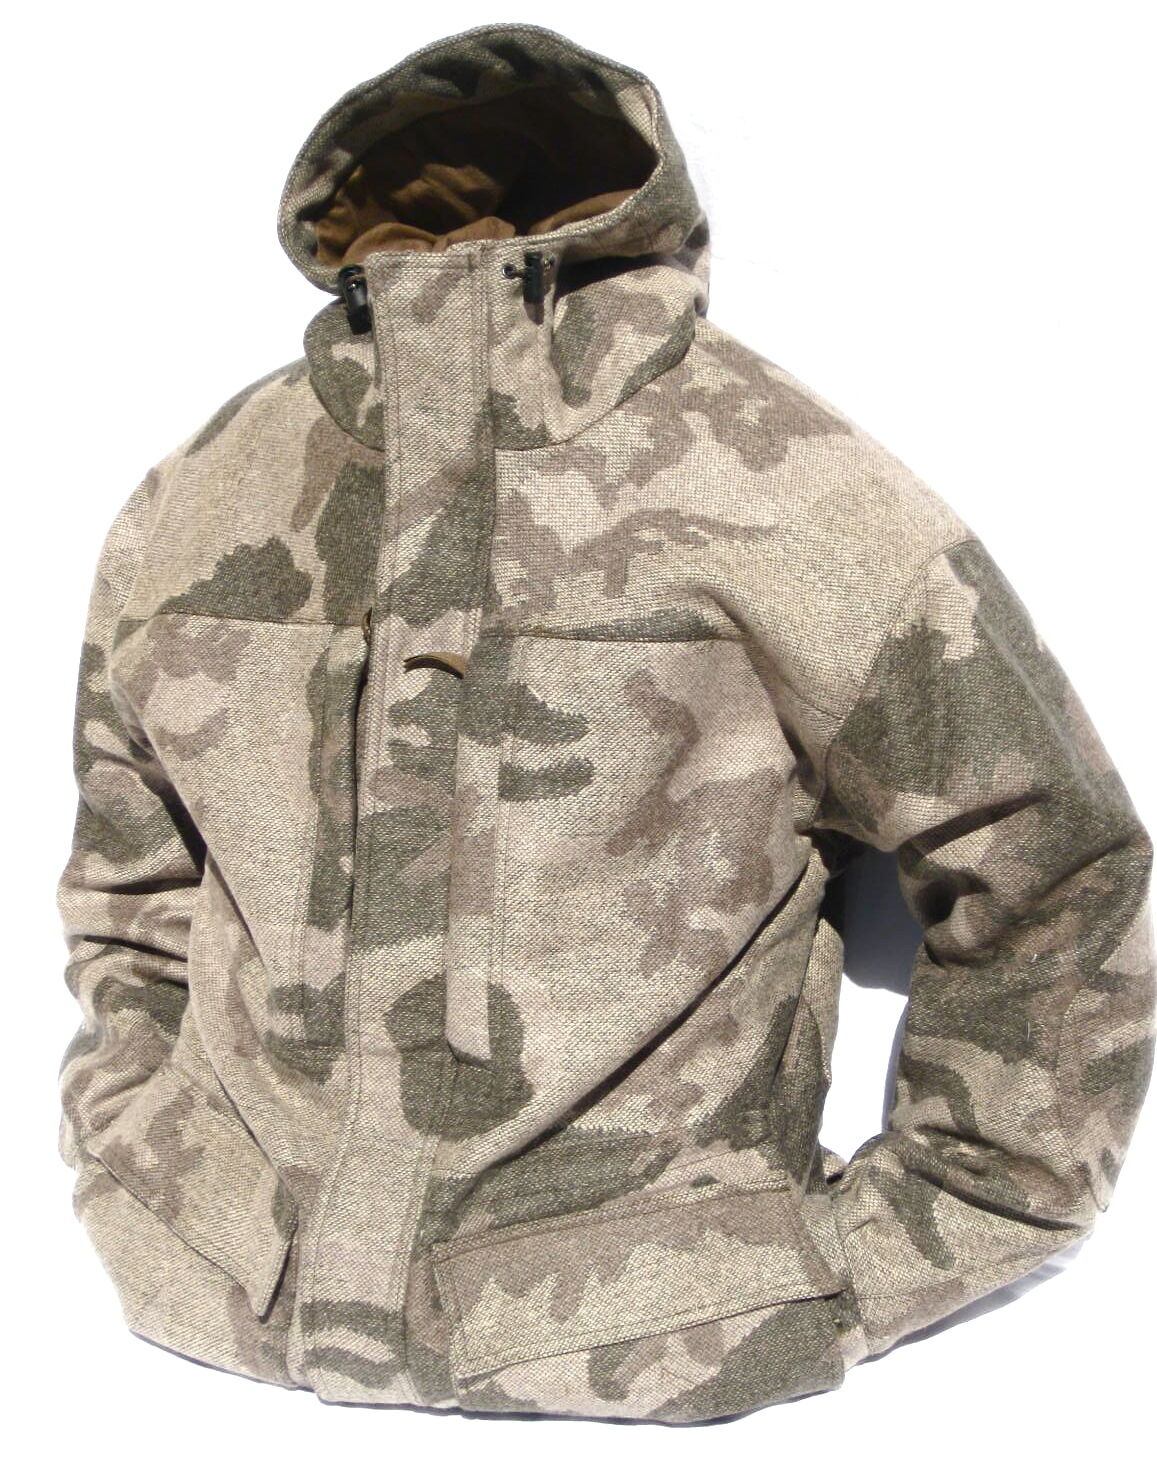 Cabela's Outfitter's Wool  Parka Windshear Dry-Plus Hunting Outfitter Camo-Brown  best-selling